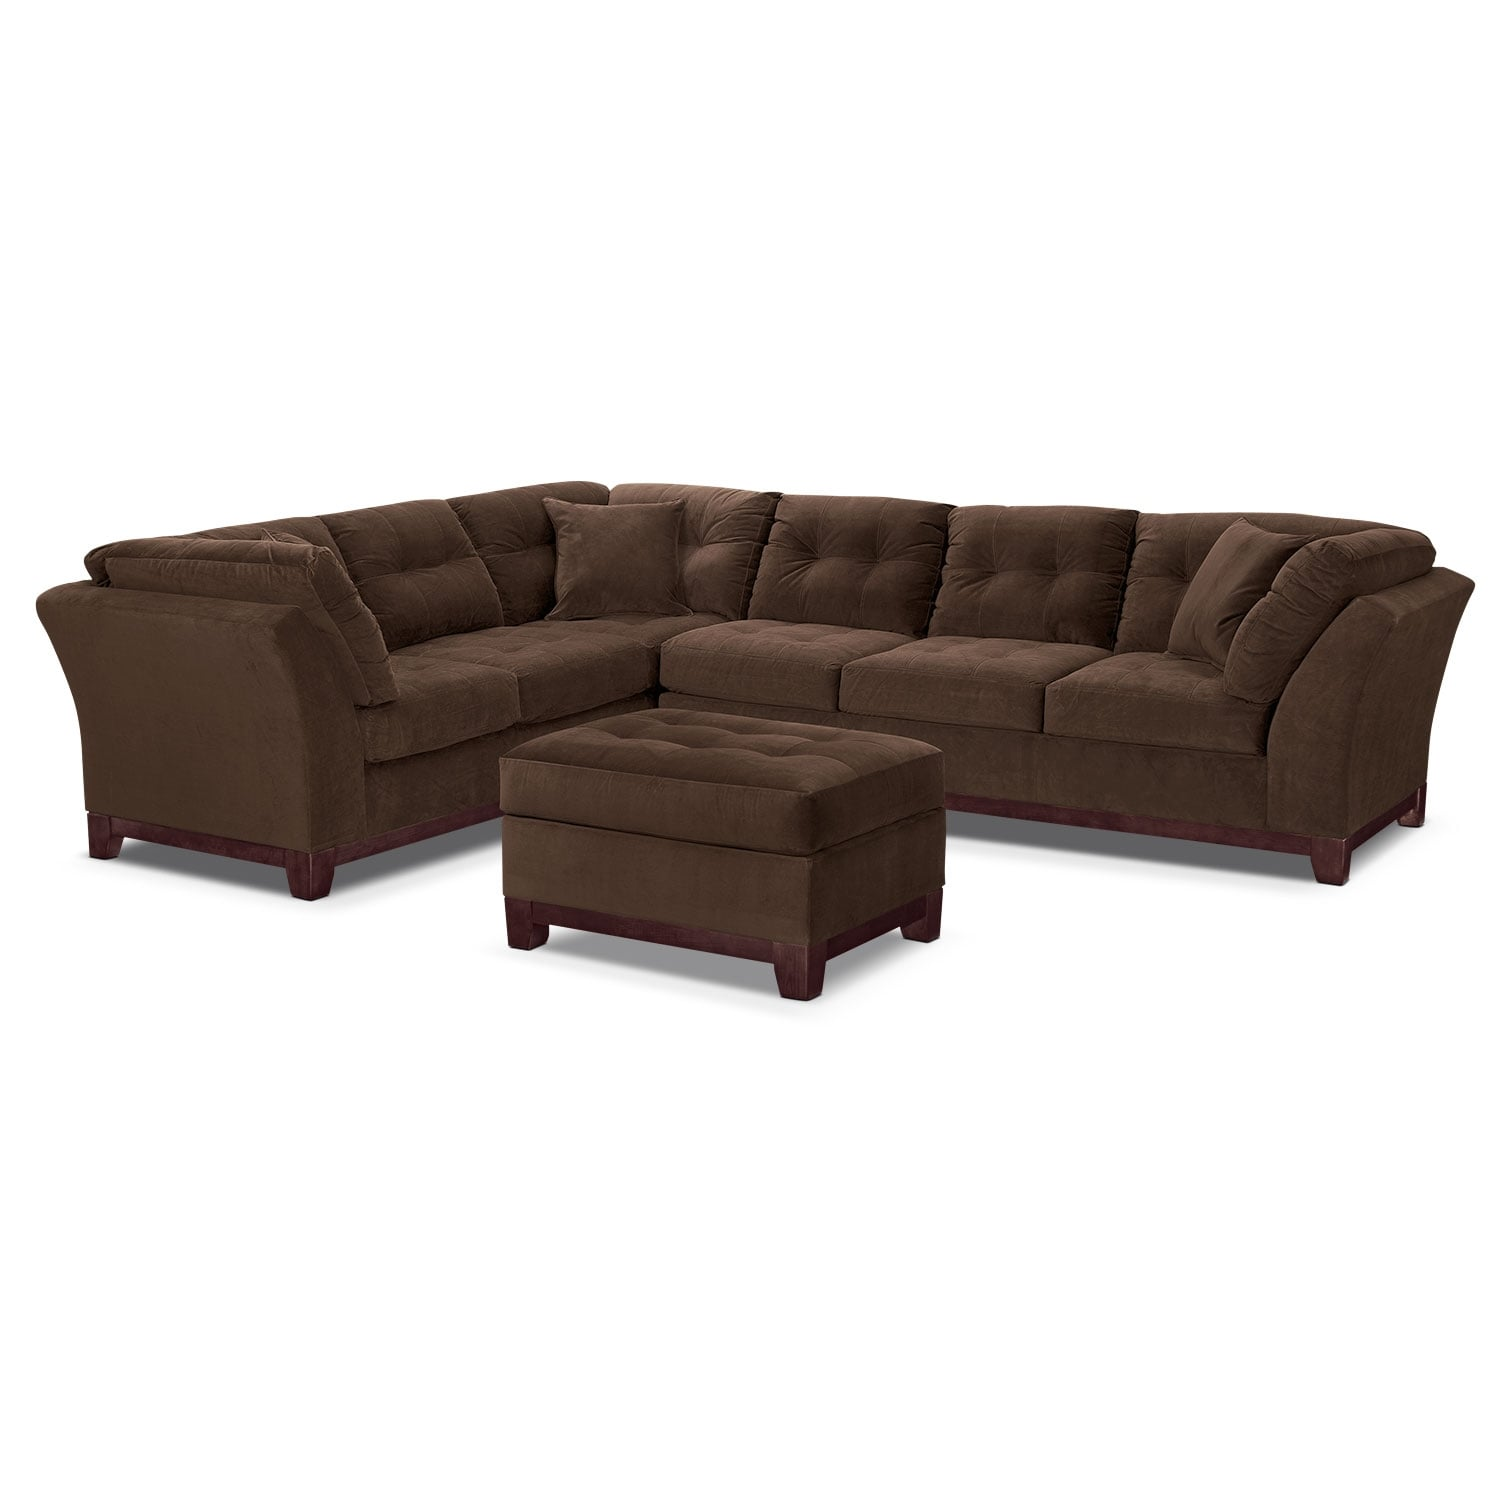 Living Room Furniture - Solace Chocolate II 2 Pc. Sectional and Ottoman